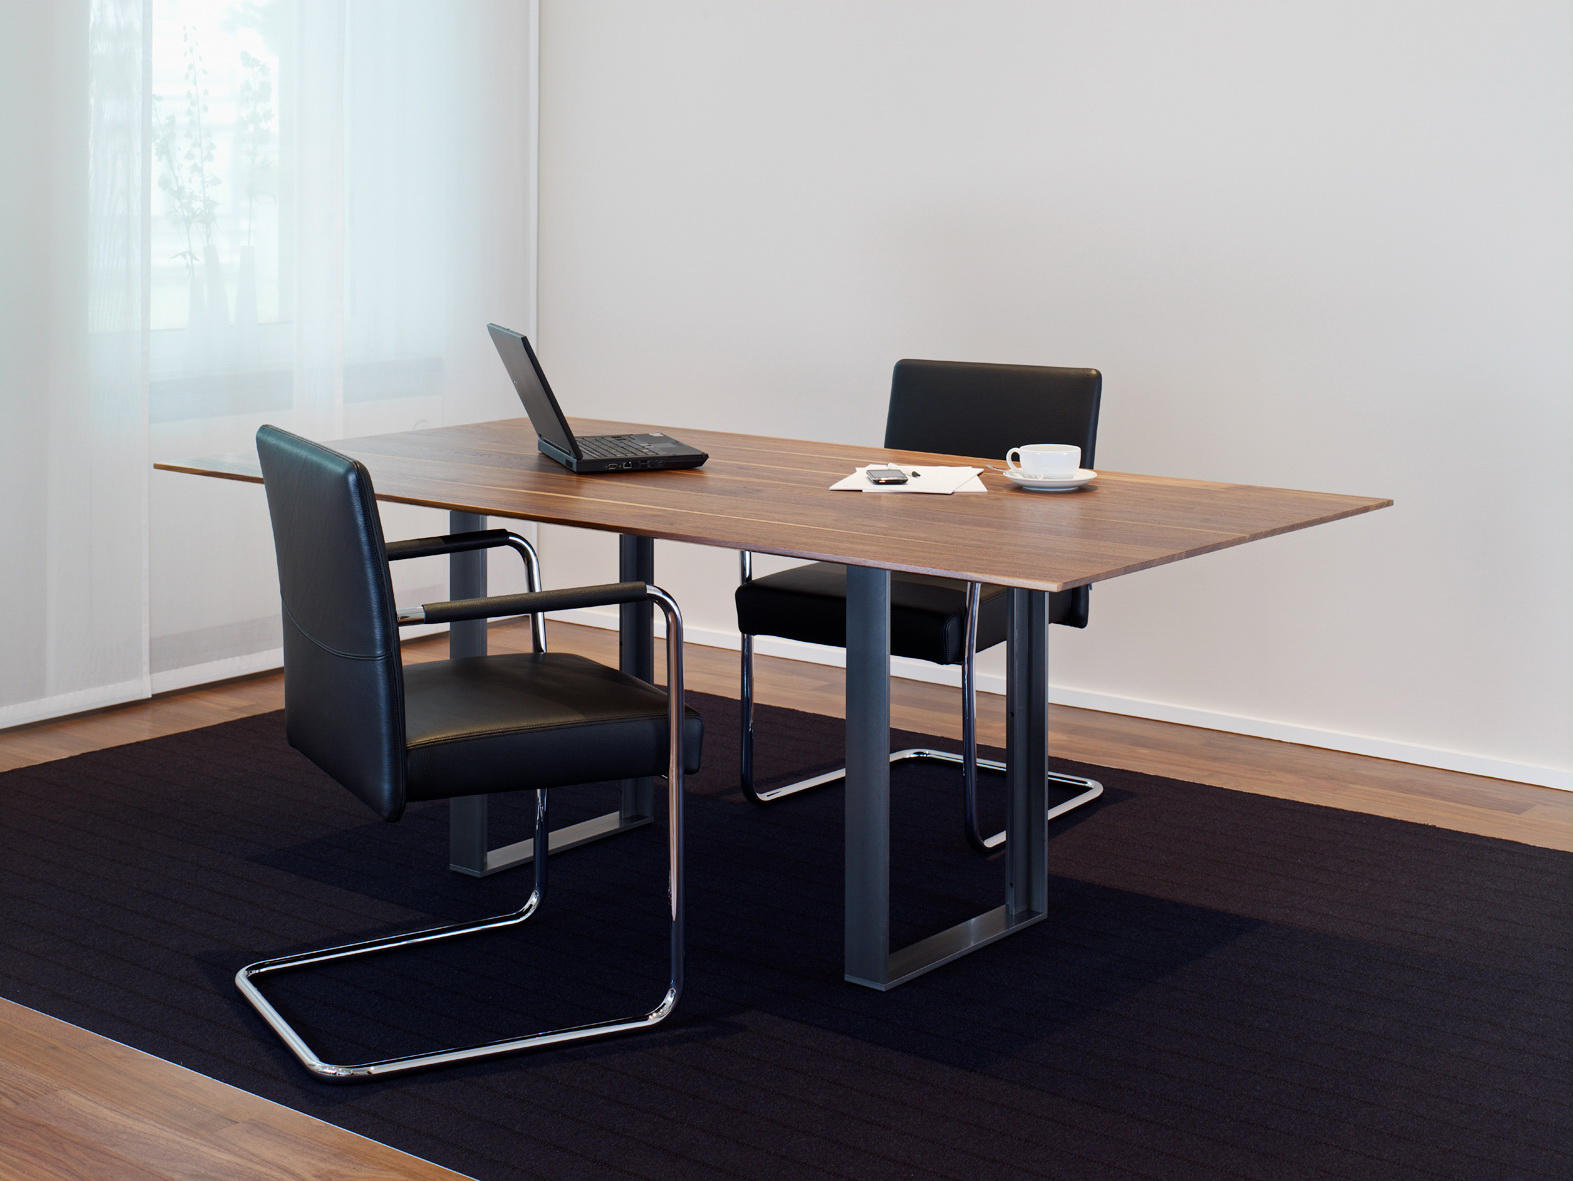 IGN. T. TABLE. - Executive desks from Ign. Design.   Architonic